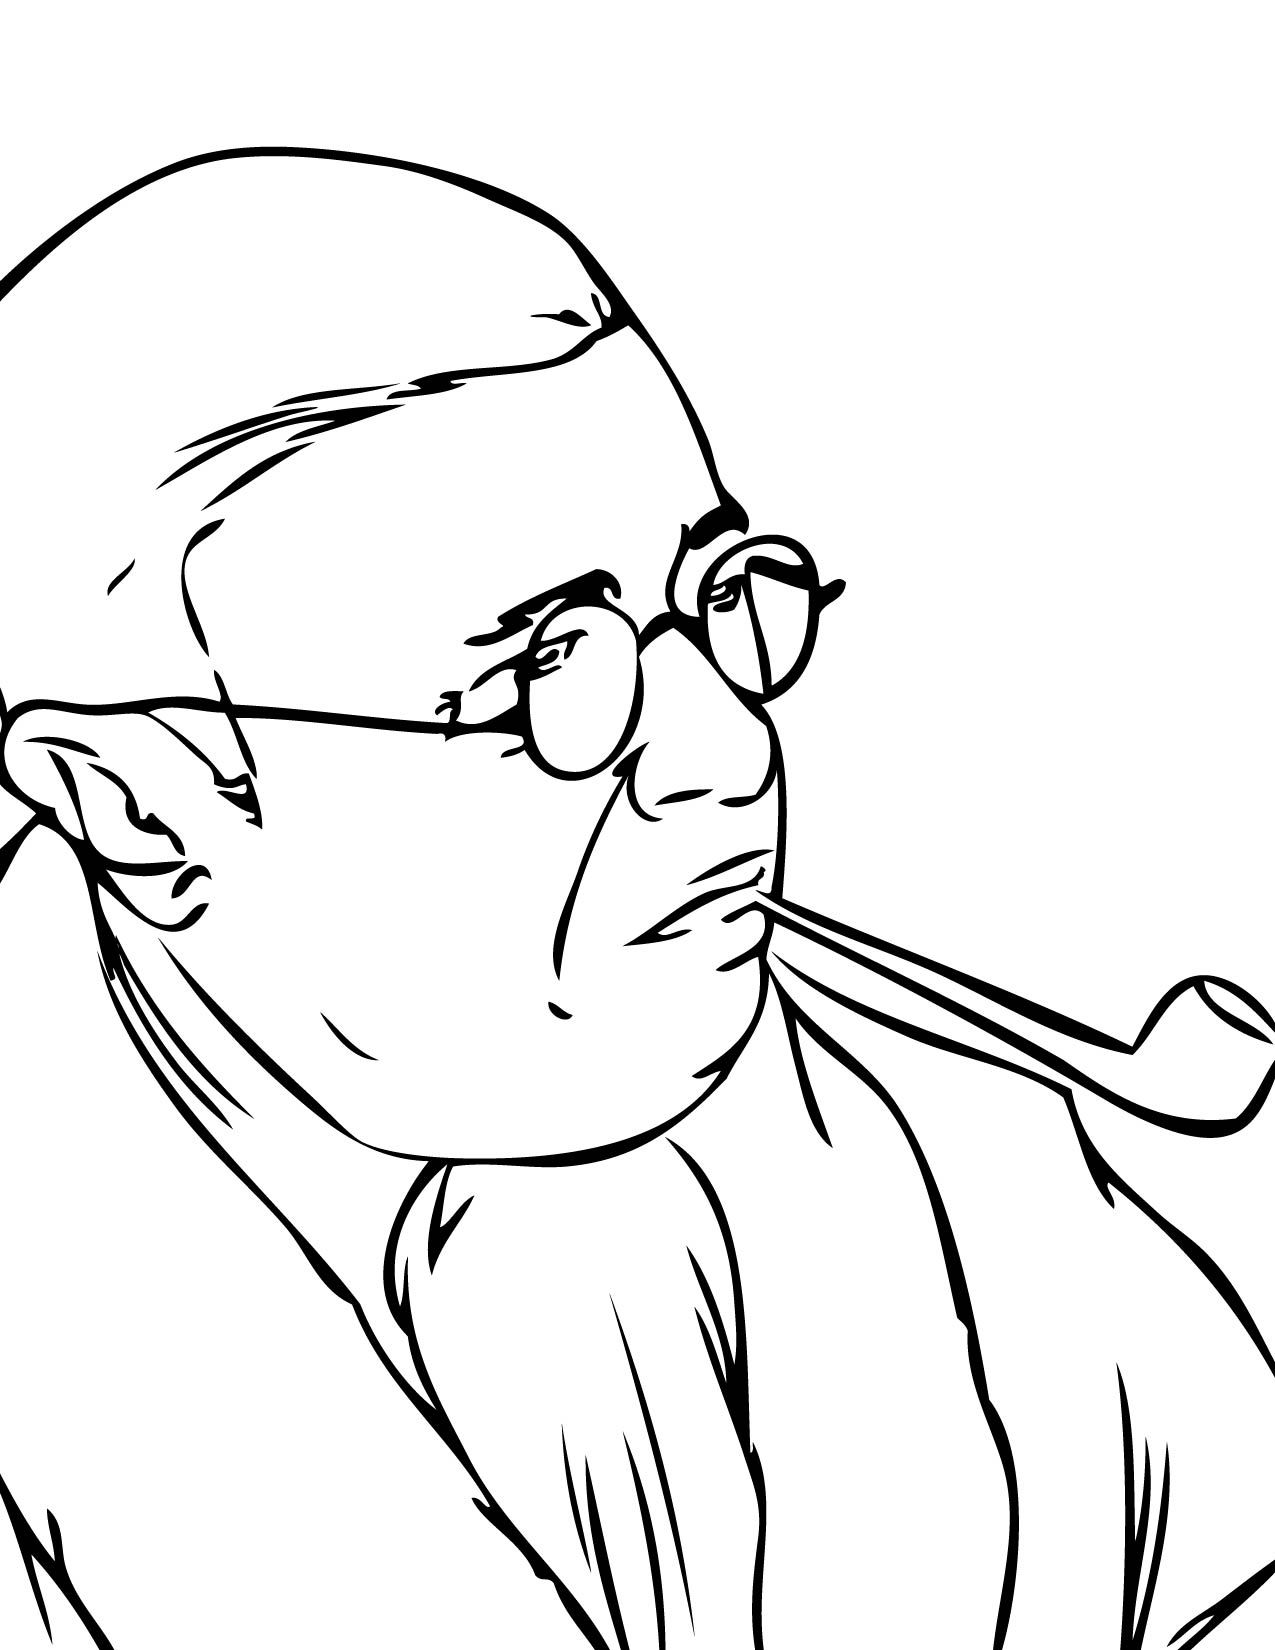 Sartre coloring page History